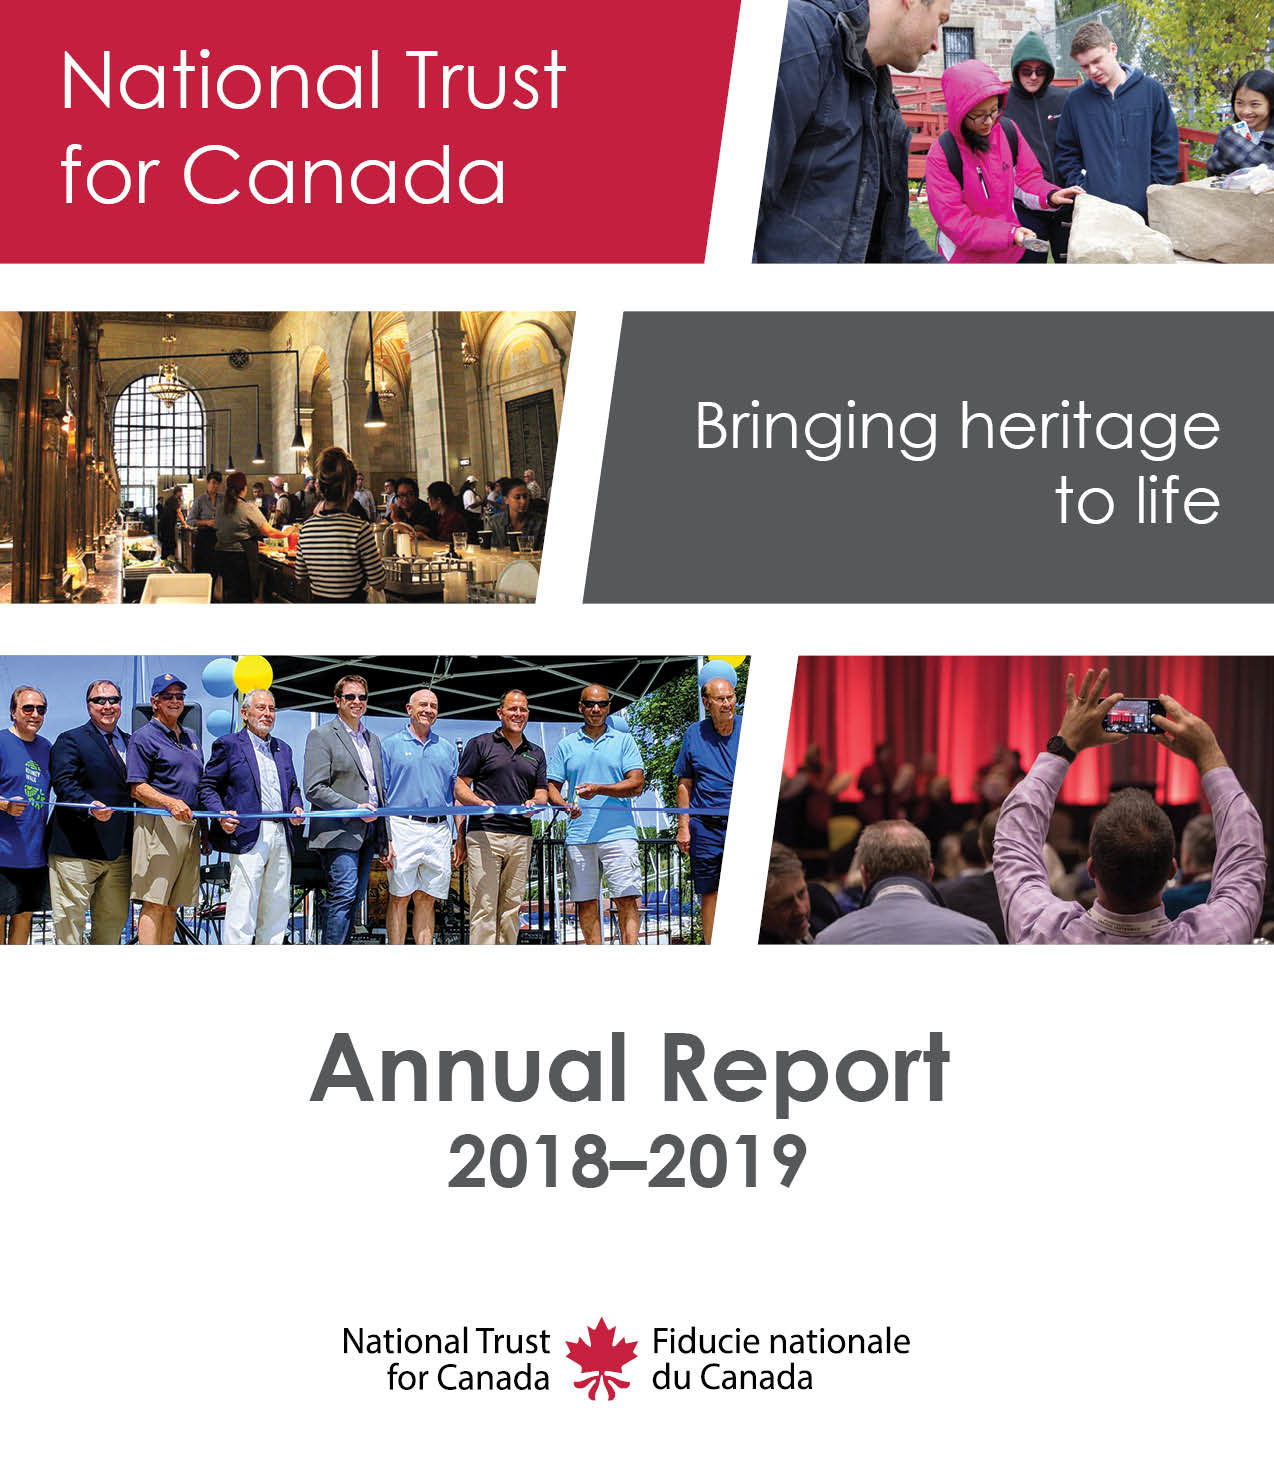 ANNUAL REPORT 2018-2019 - National Trust for Canada